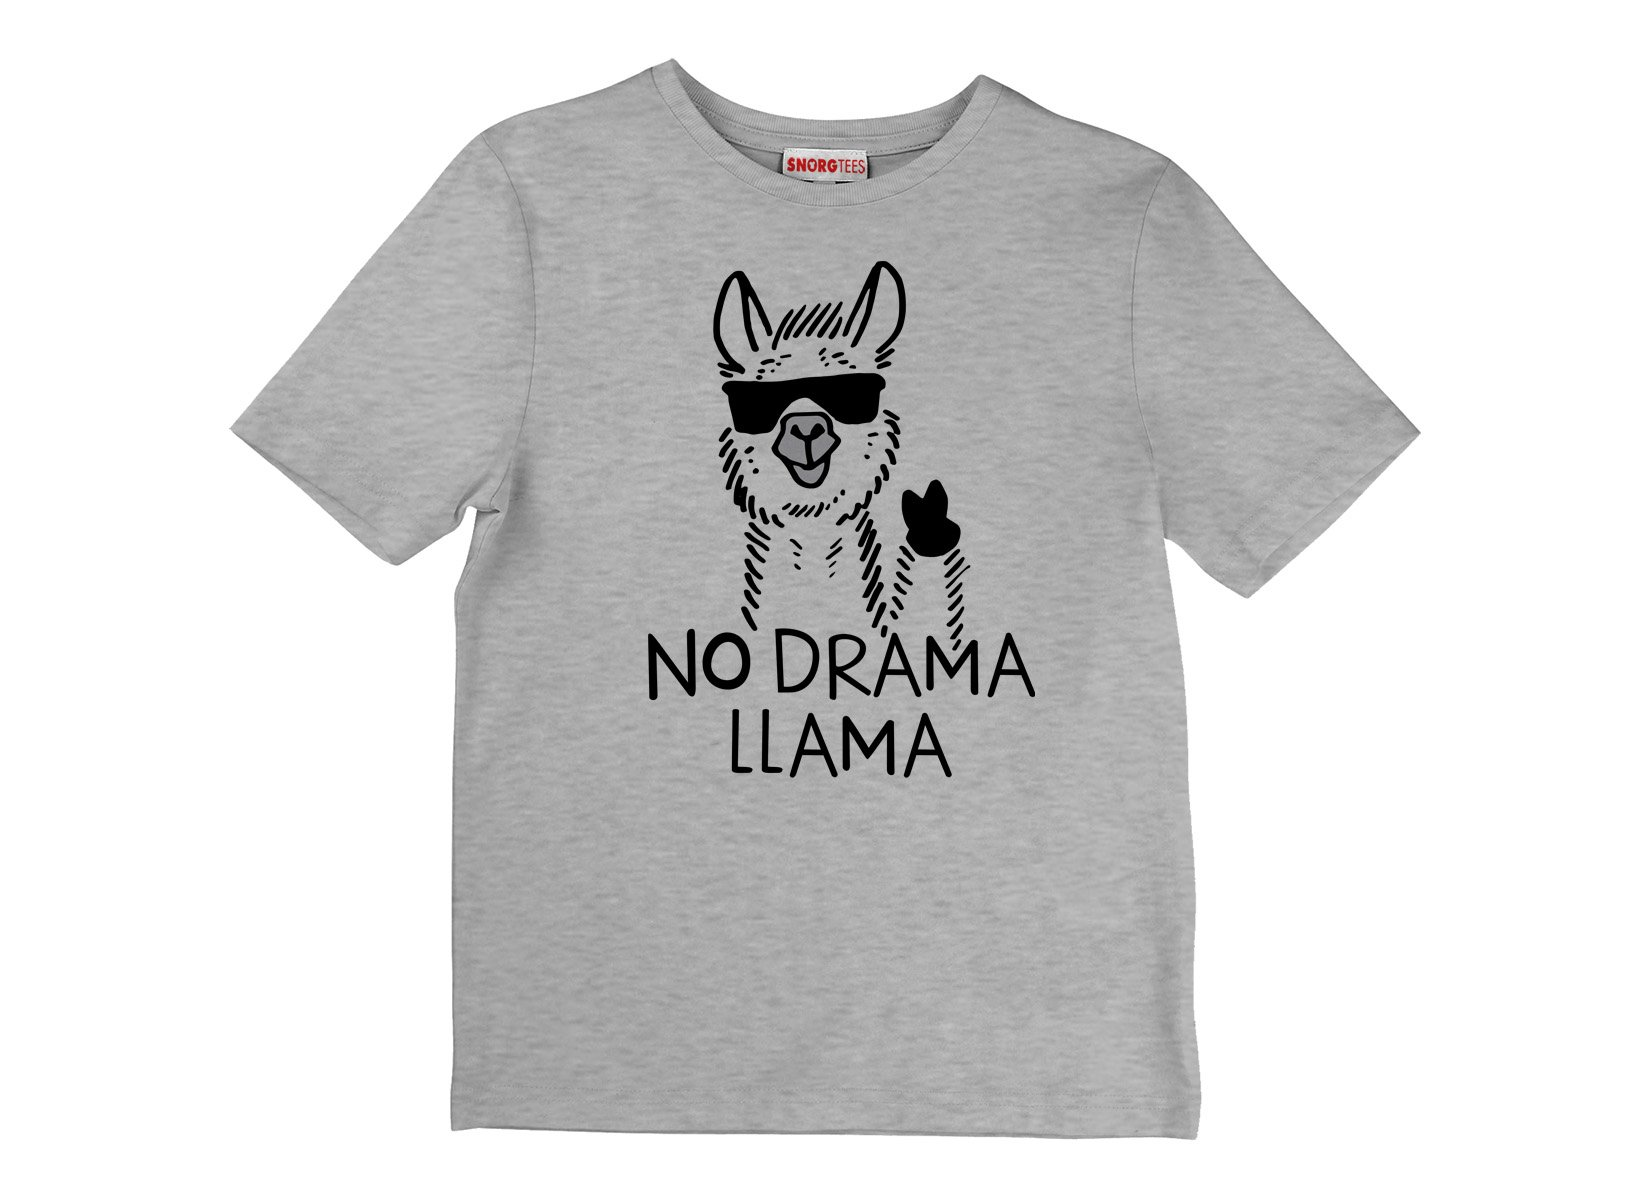 No Drama Llama on Kids T-Shirt